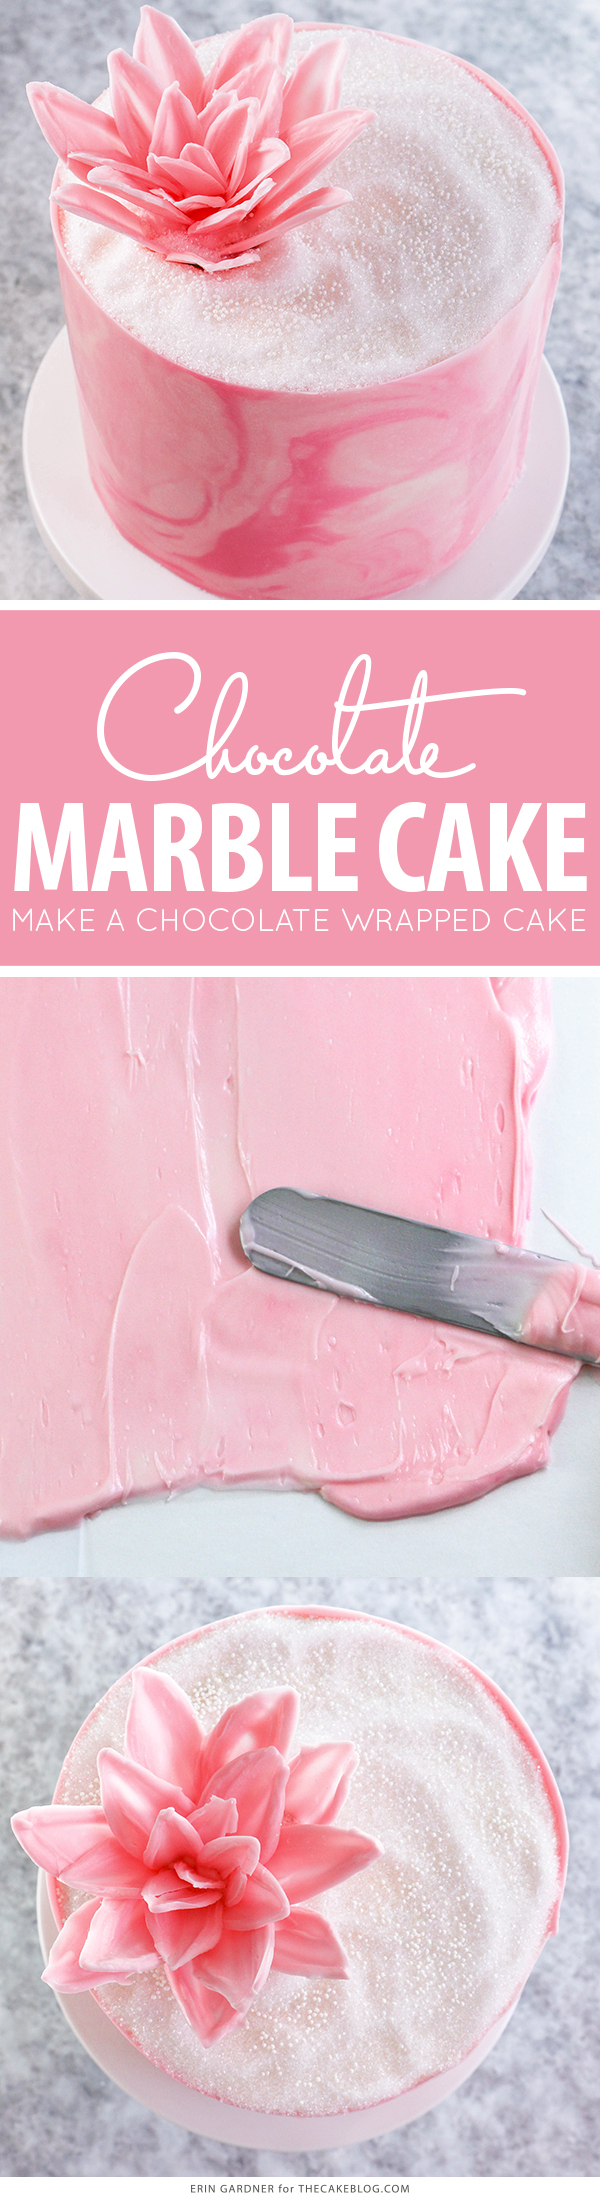 Marbled Chocolate Cake - how to wrap a cake with marbled chocolate | by Erin Gardner for TheCakeBlog.com